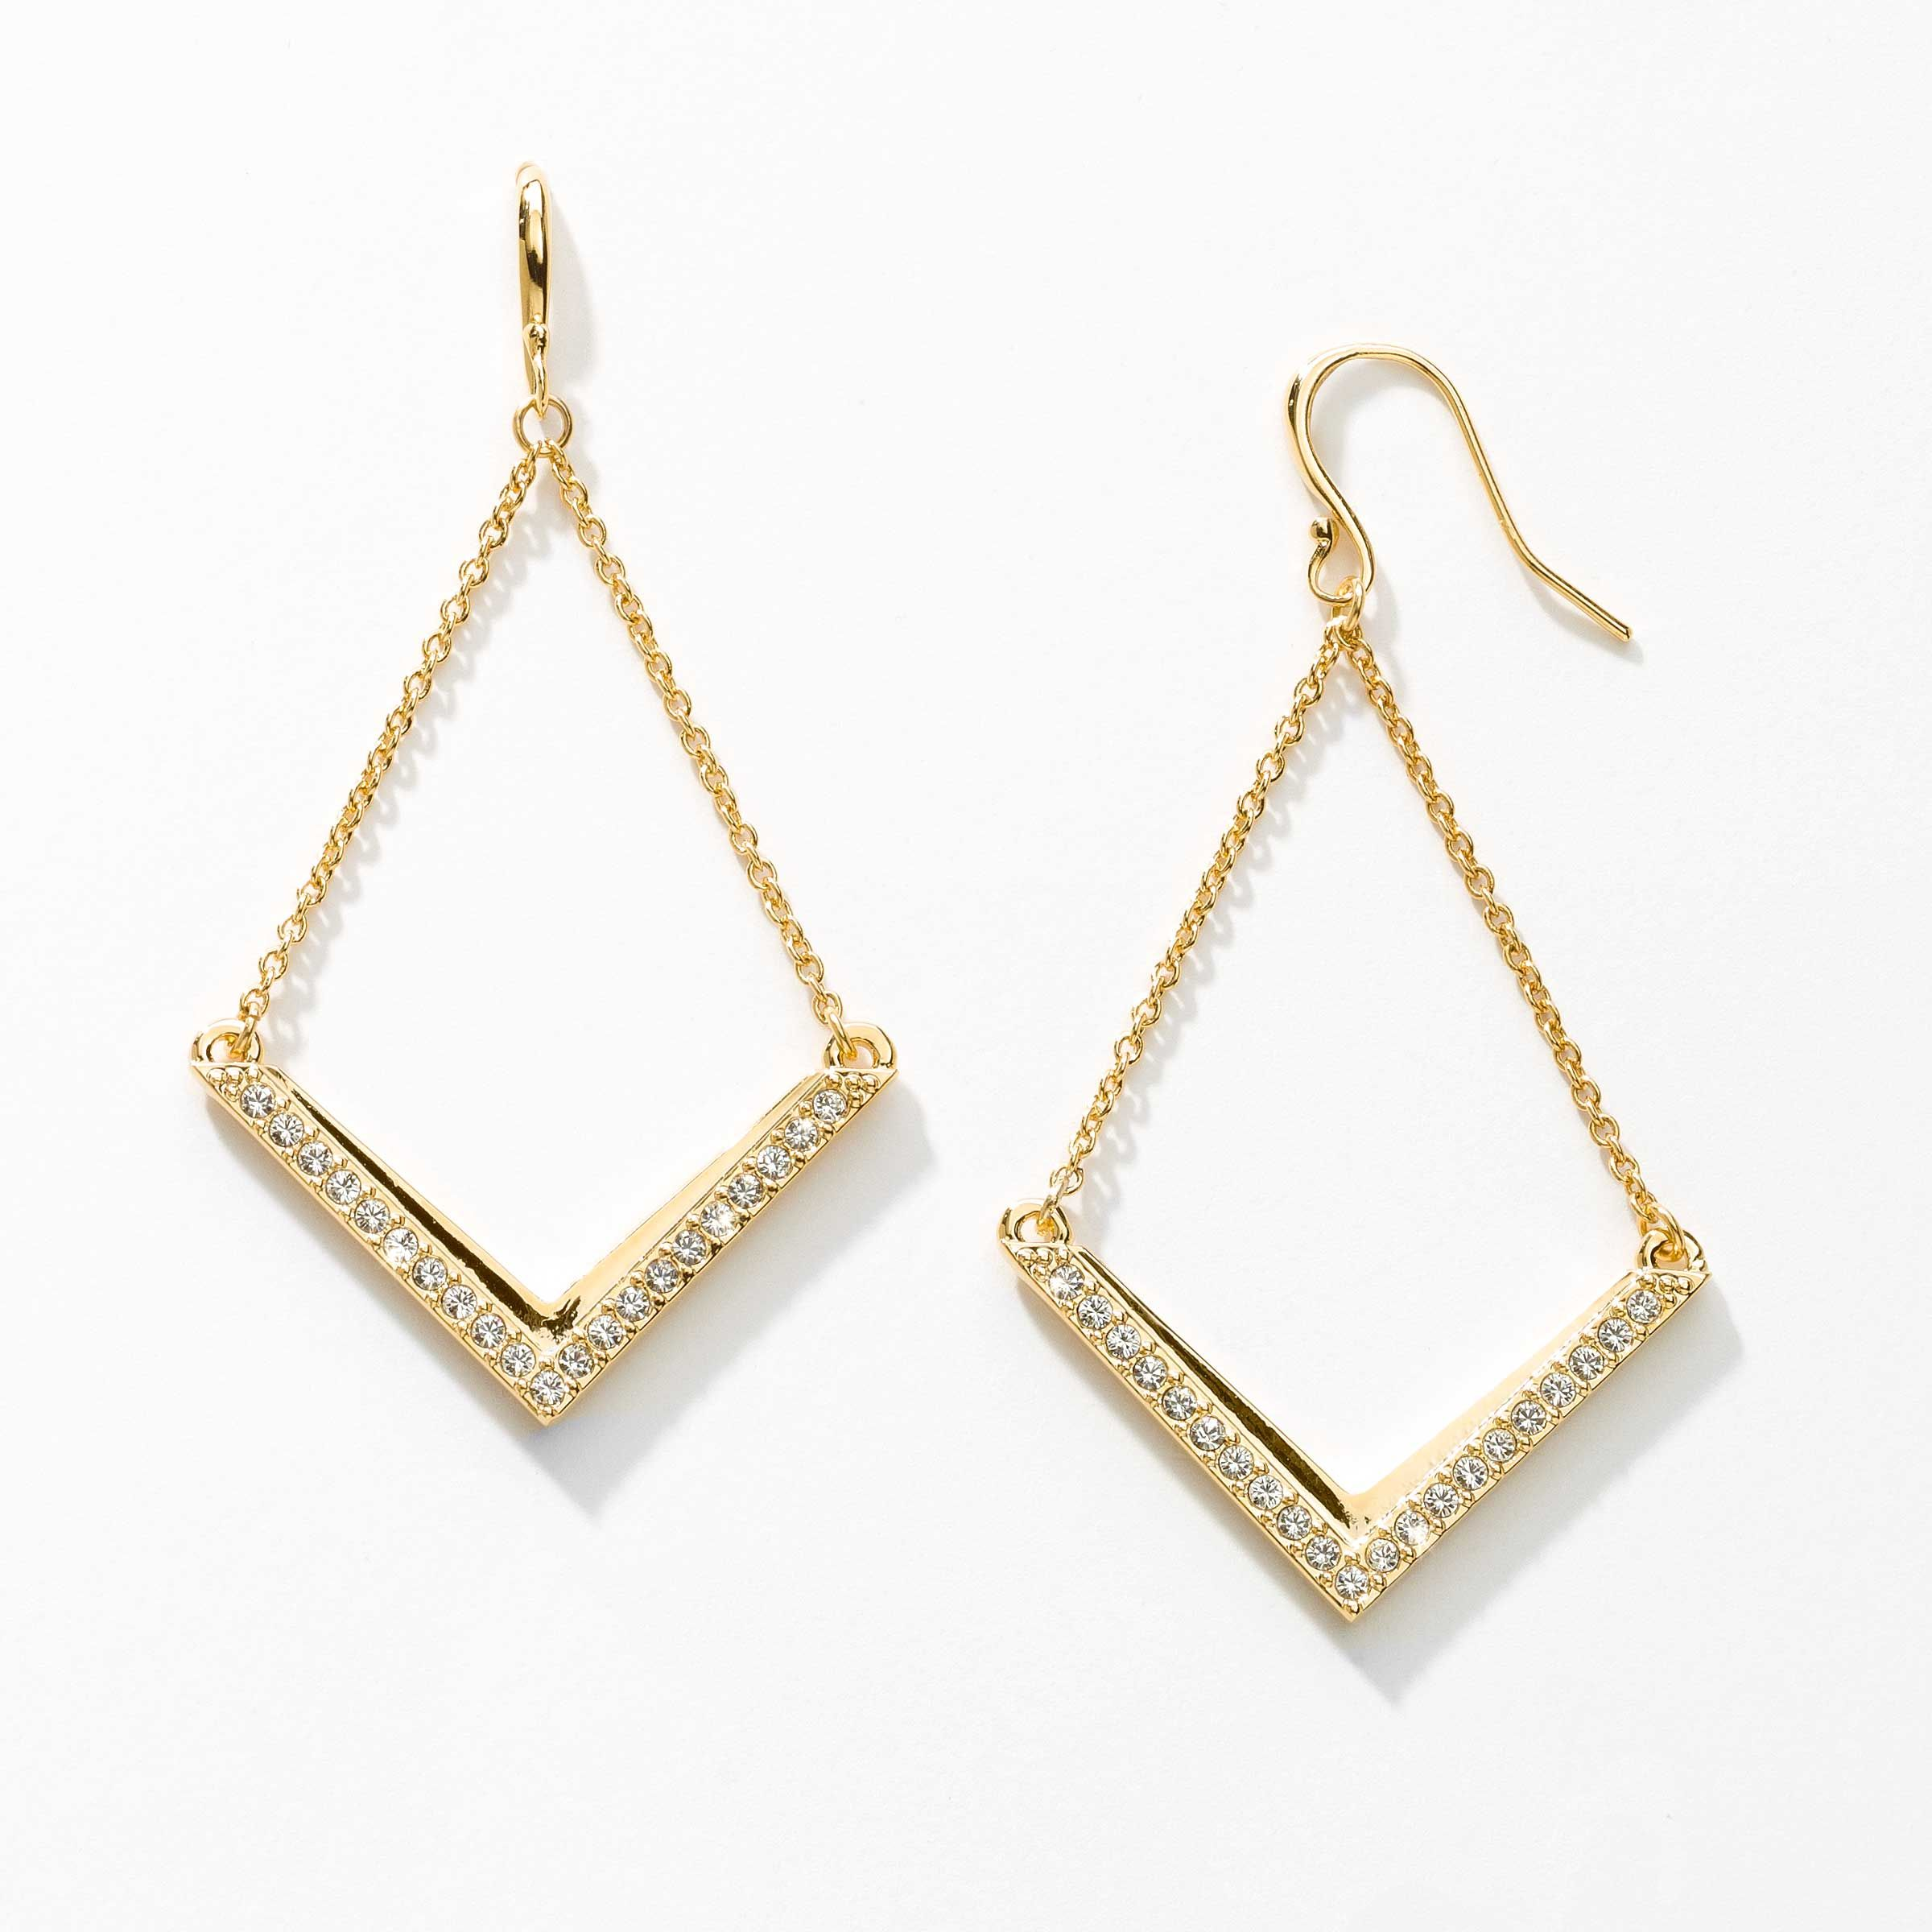 "V Earrings, Gold - Crystal; gold plating.  Ear wires; 2 1/4"" length. $49"